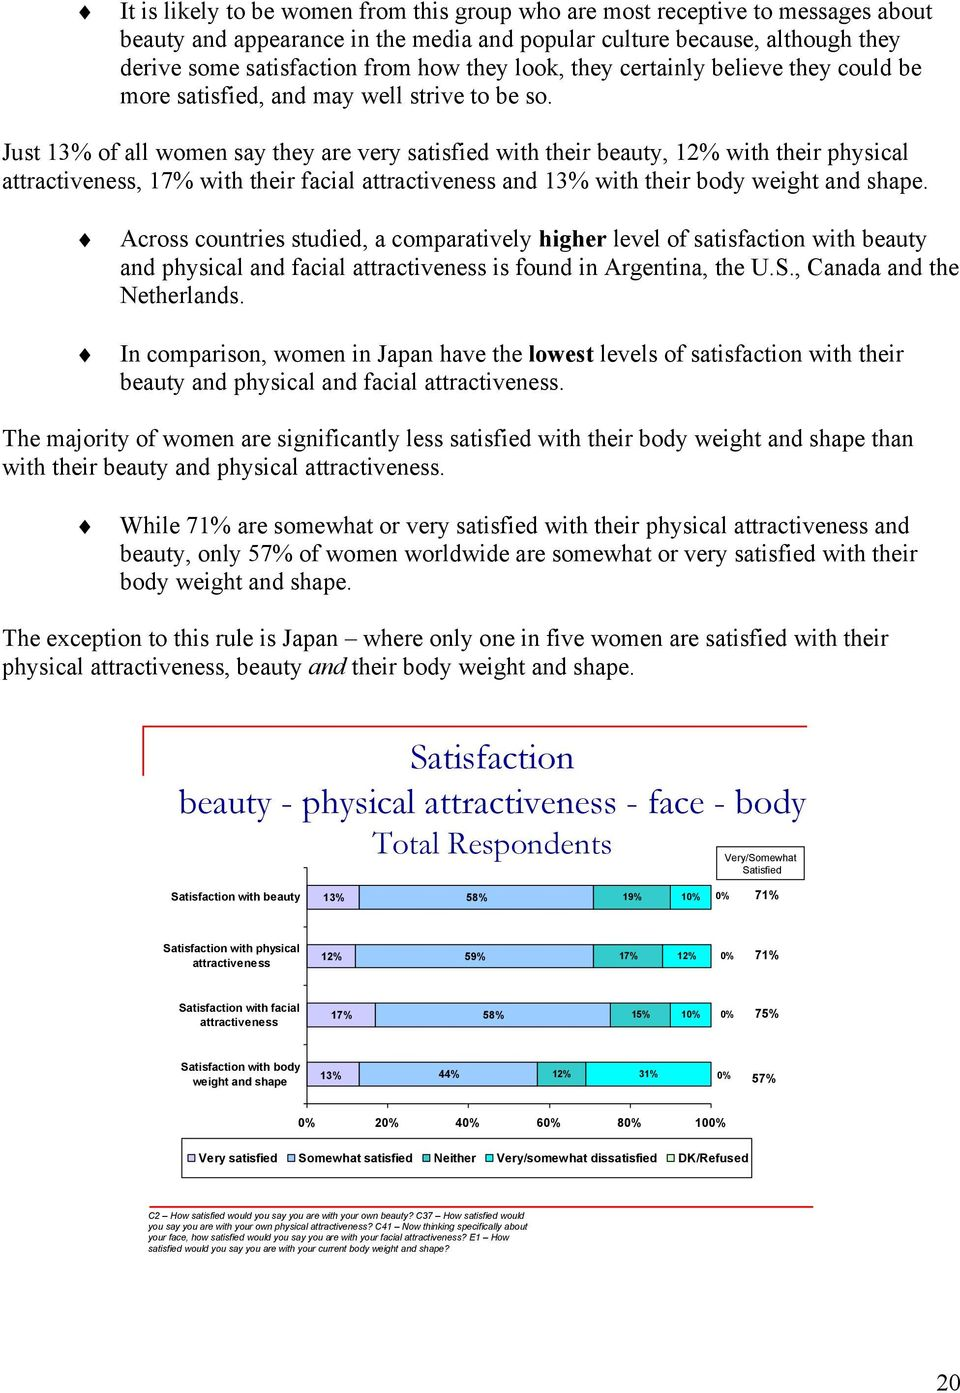 Just 13% of all women say they are very satisfied with their beauty, 12% with their physical attractiveness, 17% with their facial attractiveness and 13% with their body weight and shape.